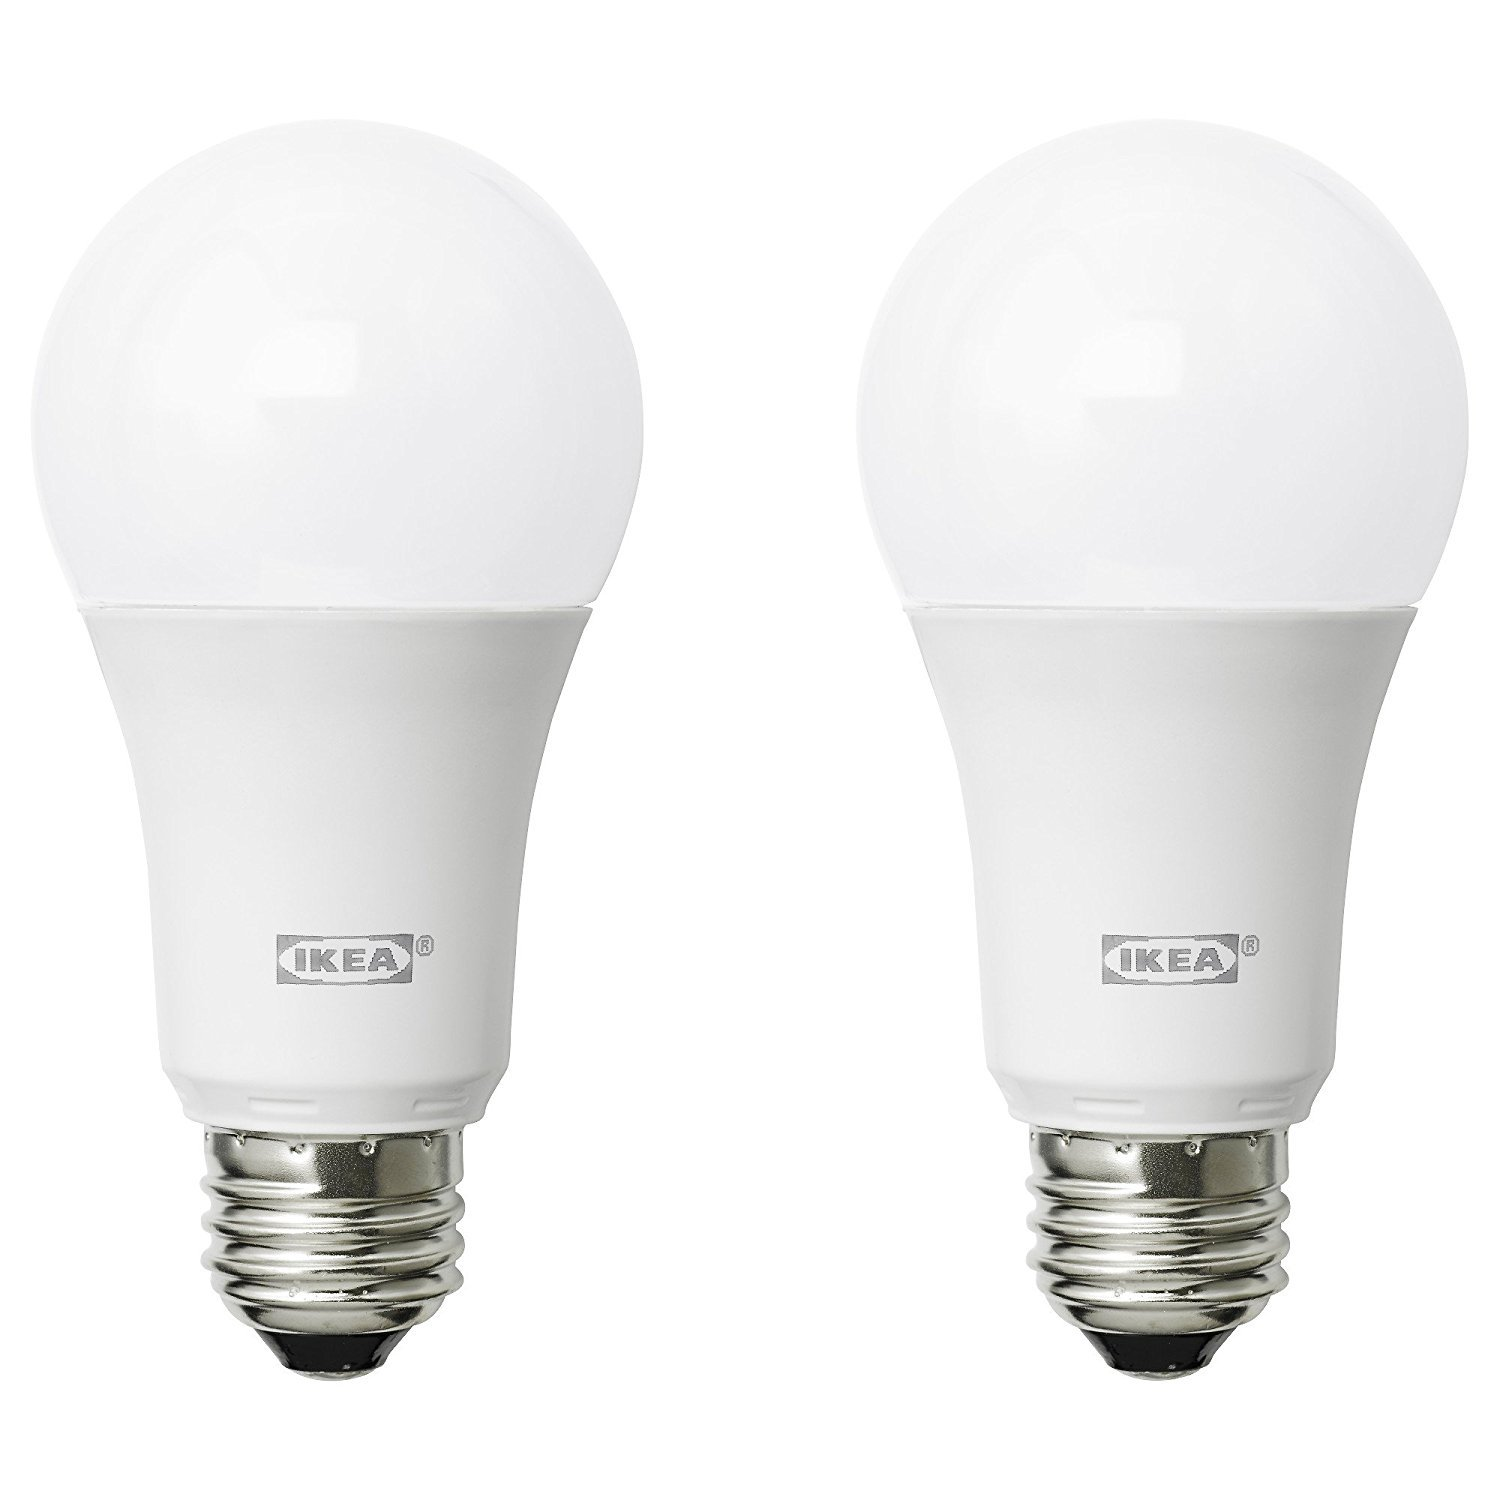 IKEA RYET LED Bulbs E26 A19 2700K Warm Soft White - Pack of 2 (1000 Lumen - 11.5 Watts) - - Amazon.com